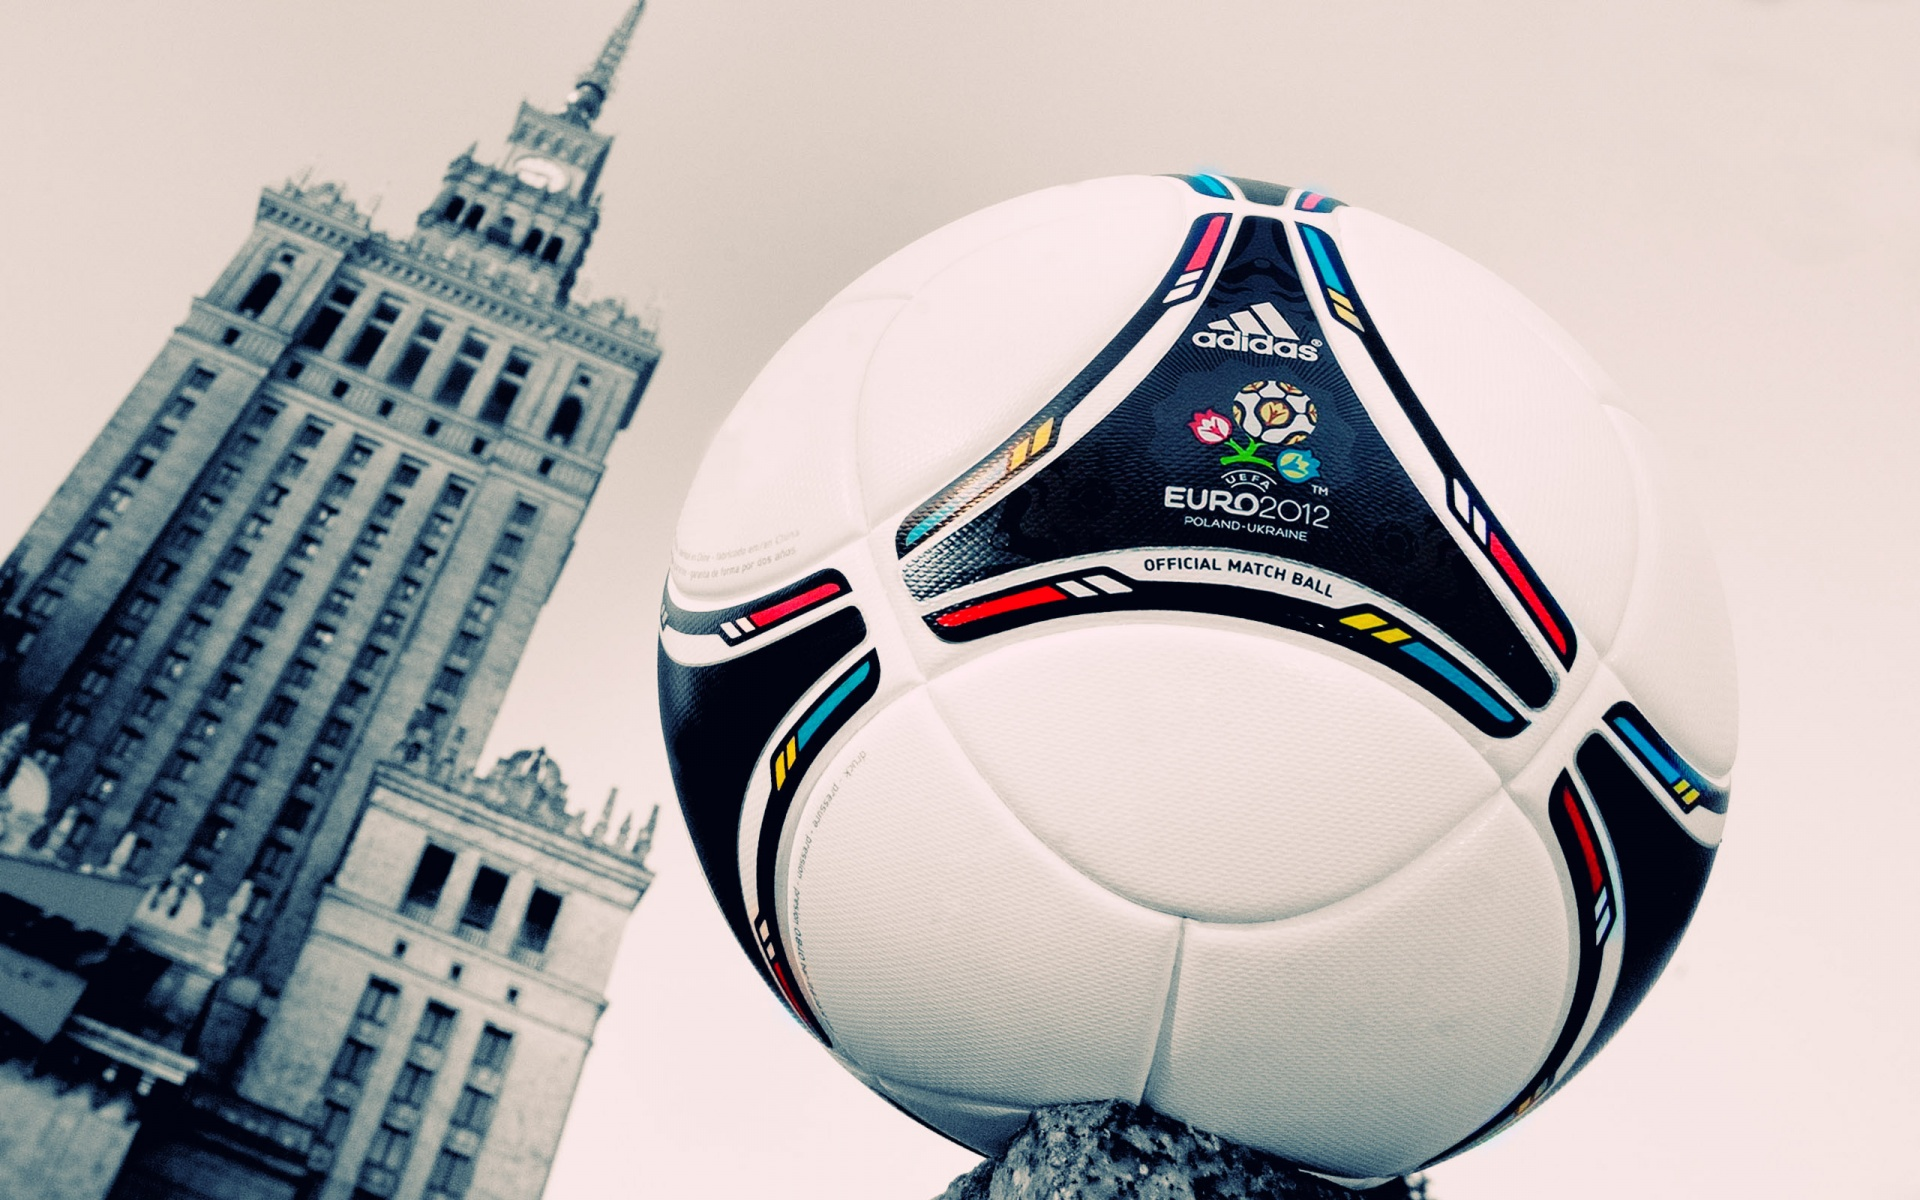 UEFA Euro 2012 Match Ball 1202.2 Kb